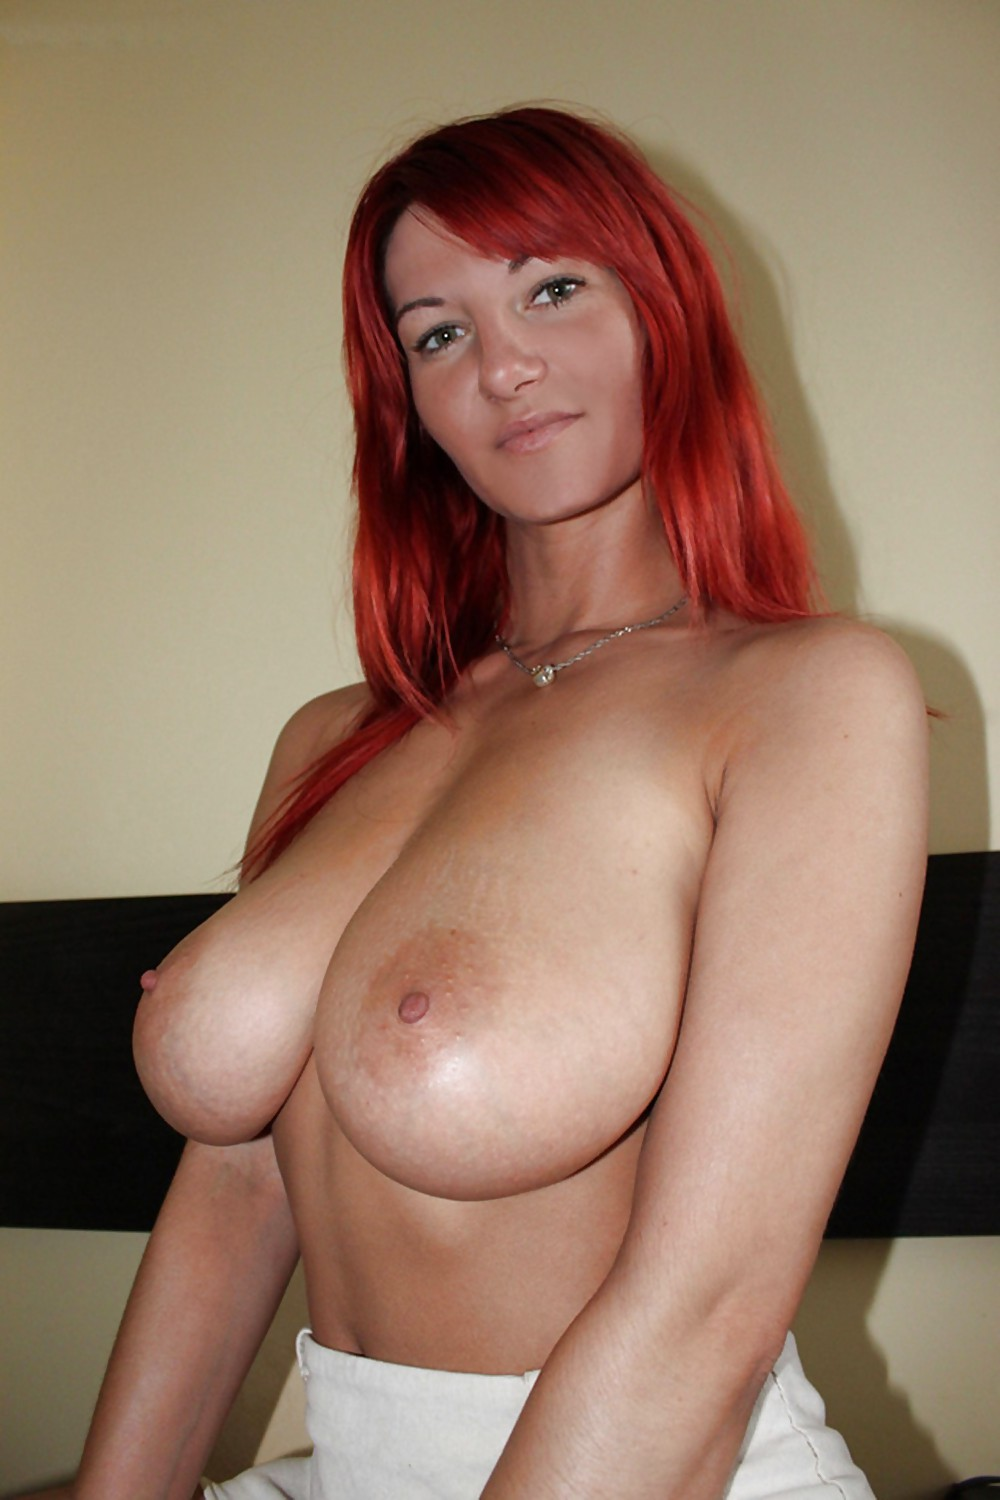 Red Head Milf Stockings